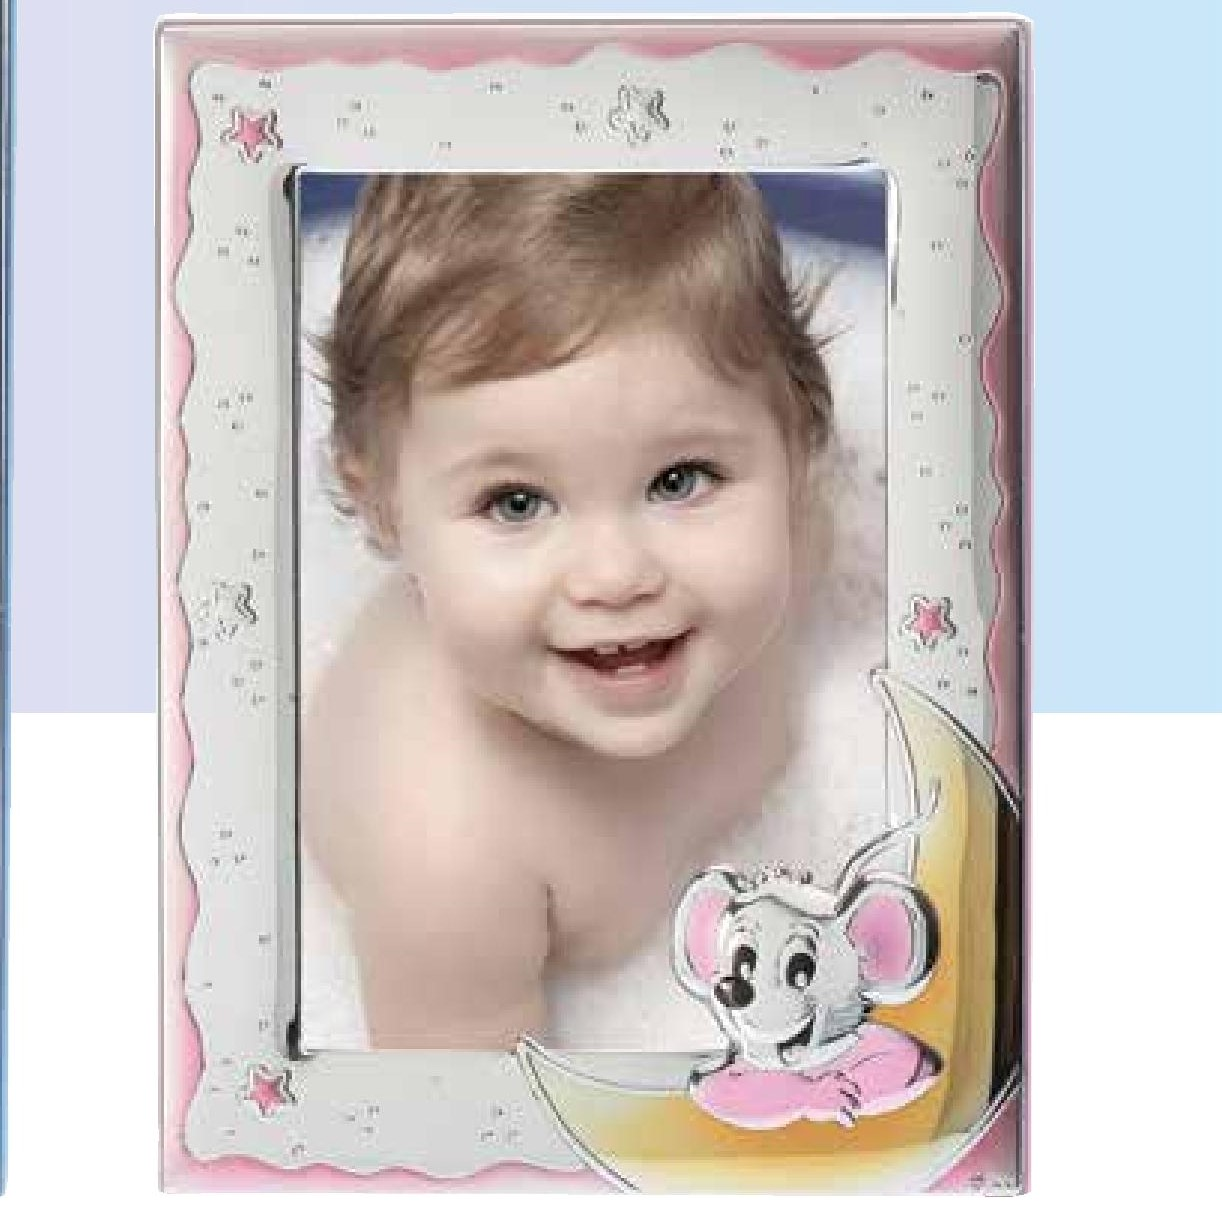 https://gifts4you.gr/wp-content/uploads/2018/11/Silver-Baby-Frames-page-006.jpg